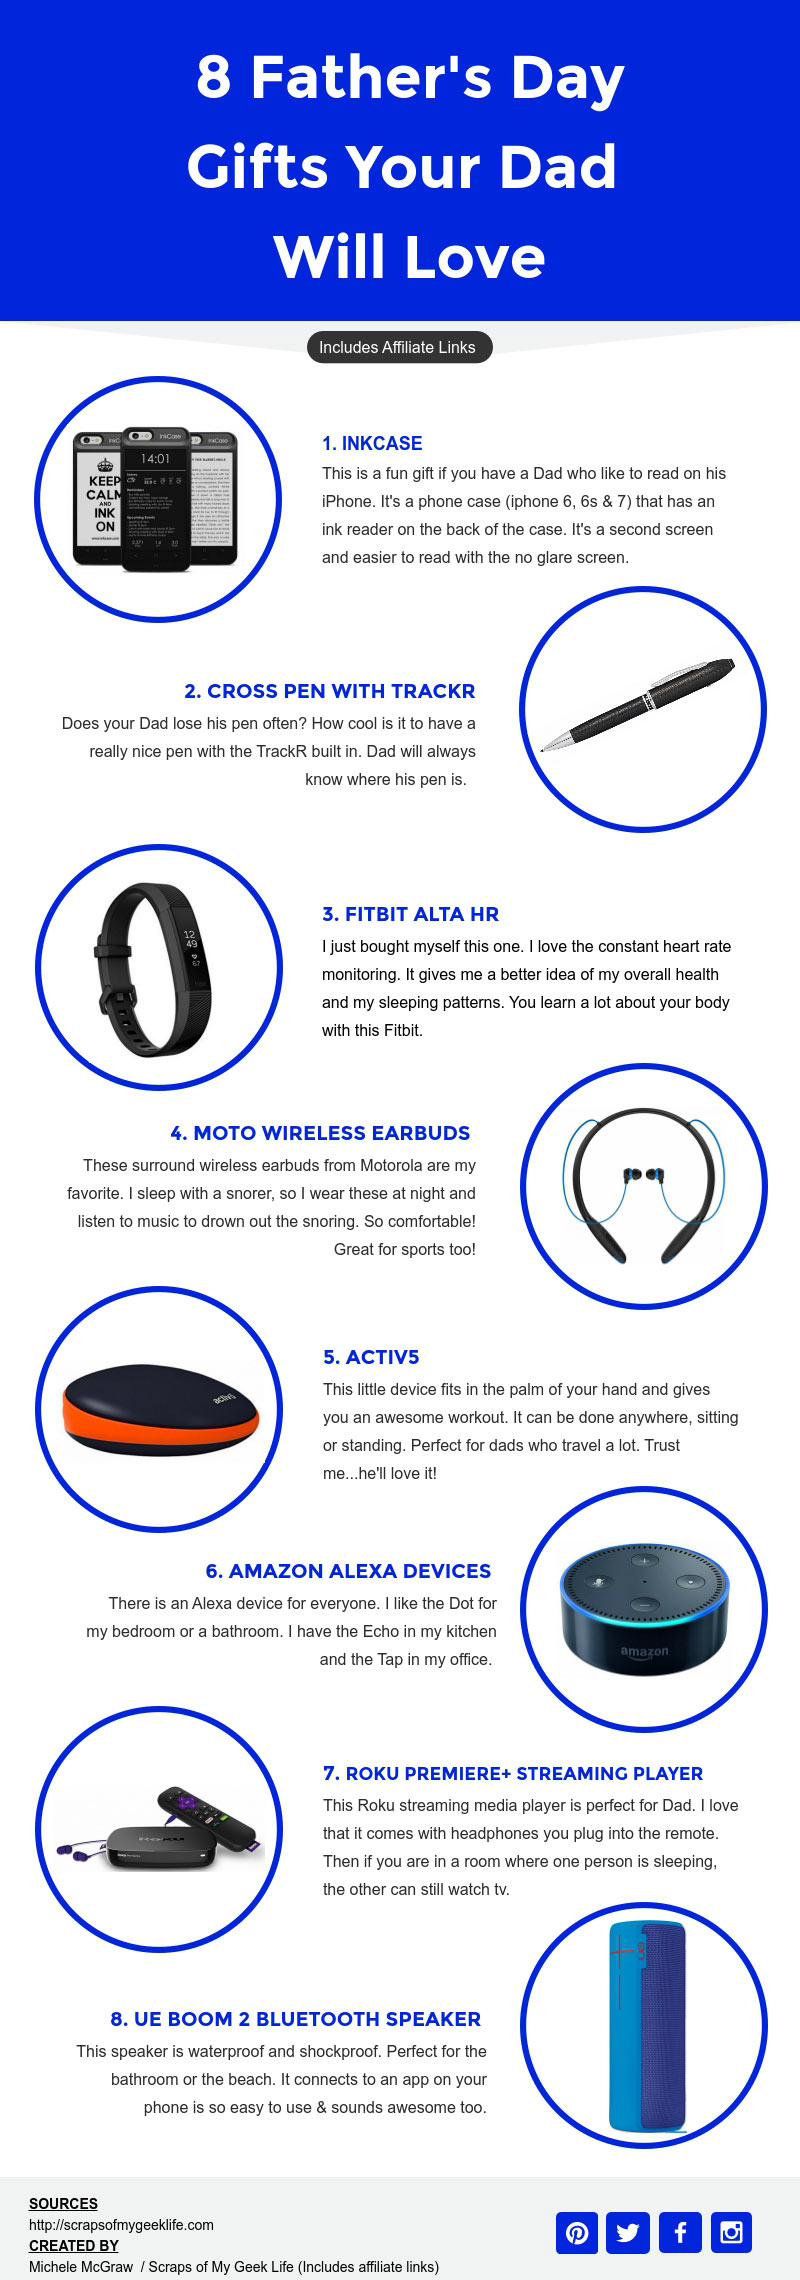 8 Father's Day Gifts Your Dad Will Love #Infographic